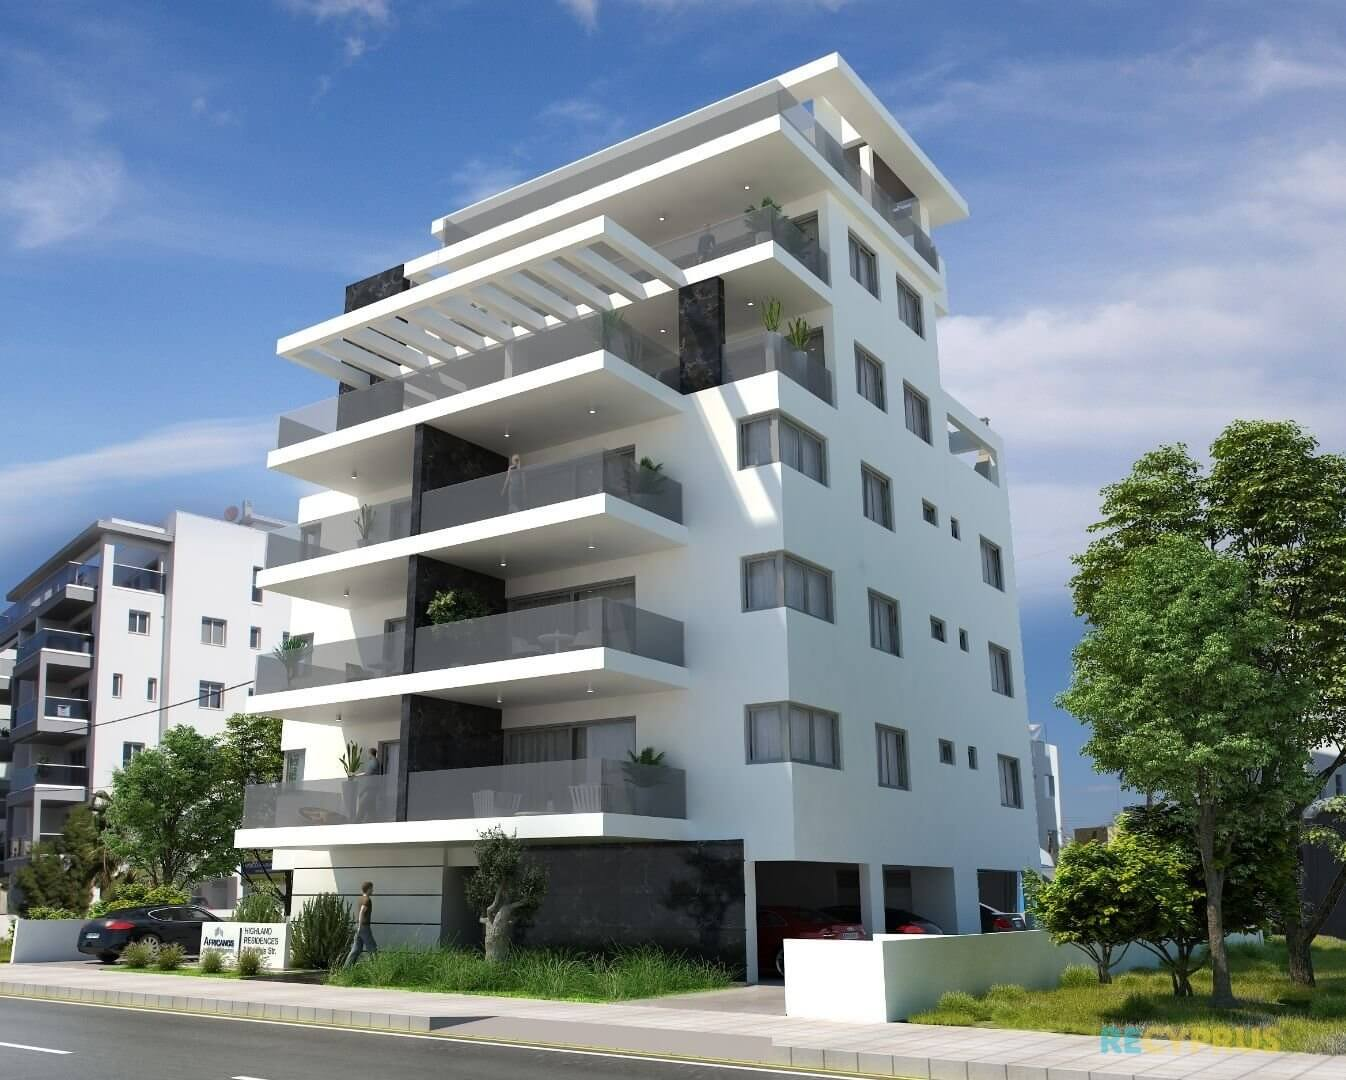 Apartment for sale City Center Larnaca Cyprus 1 3599